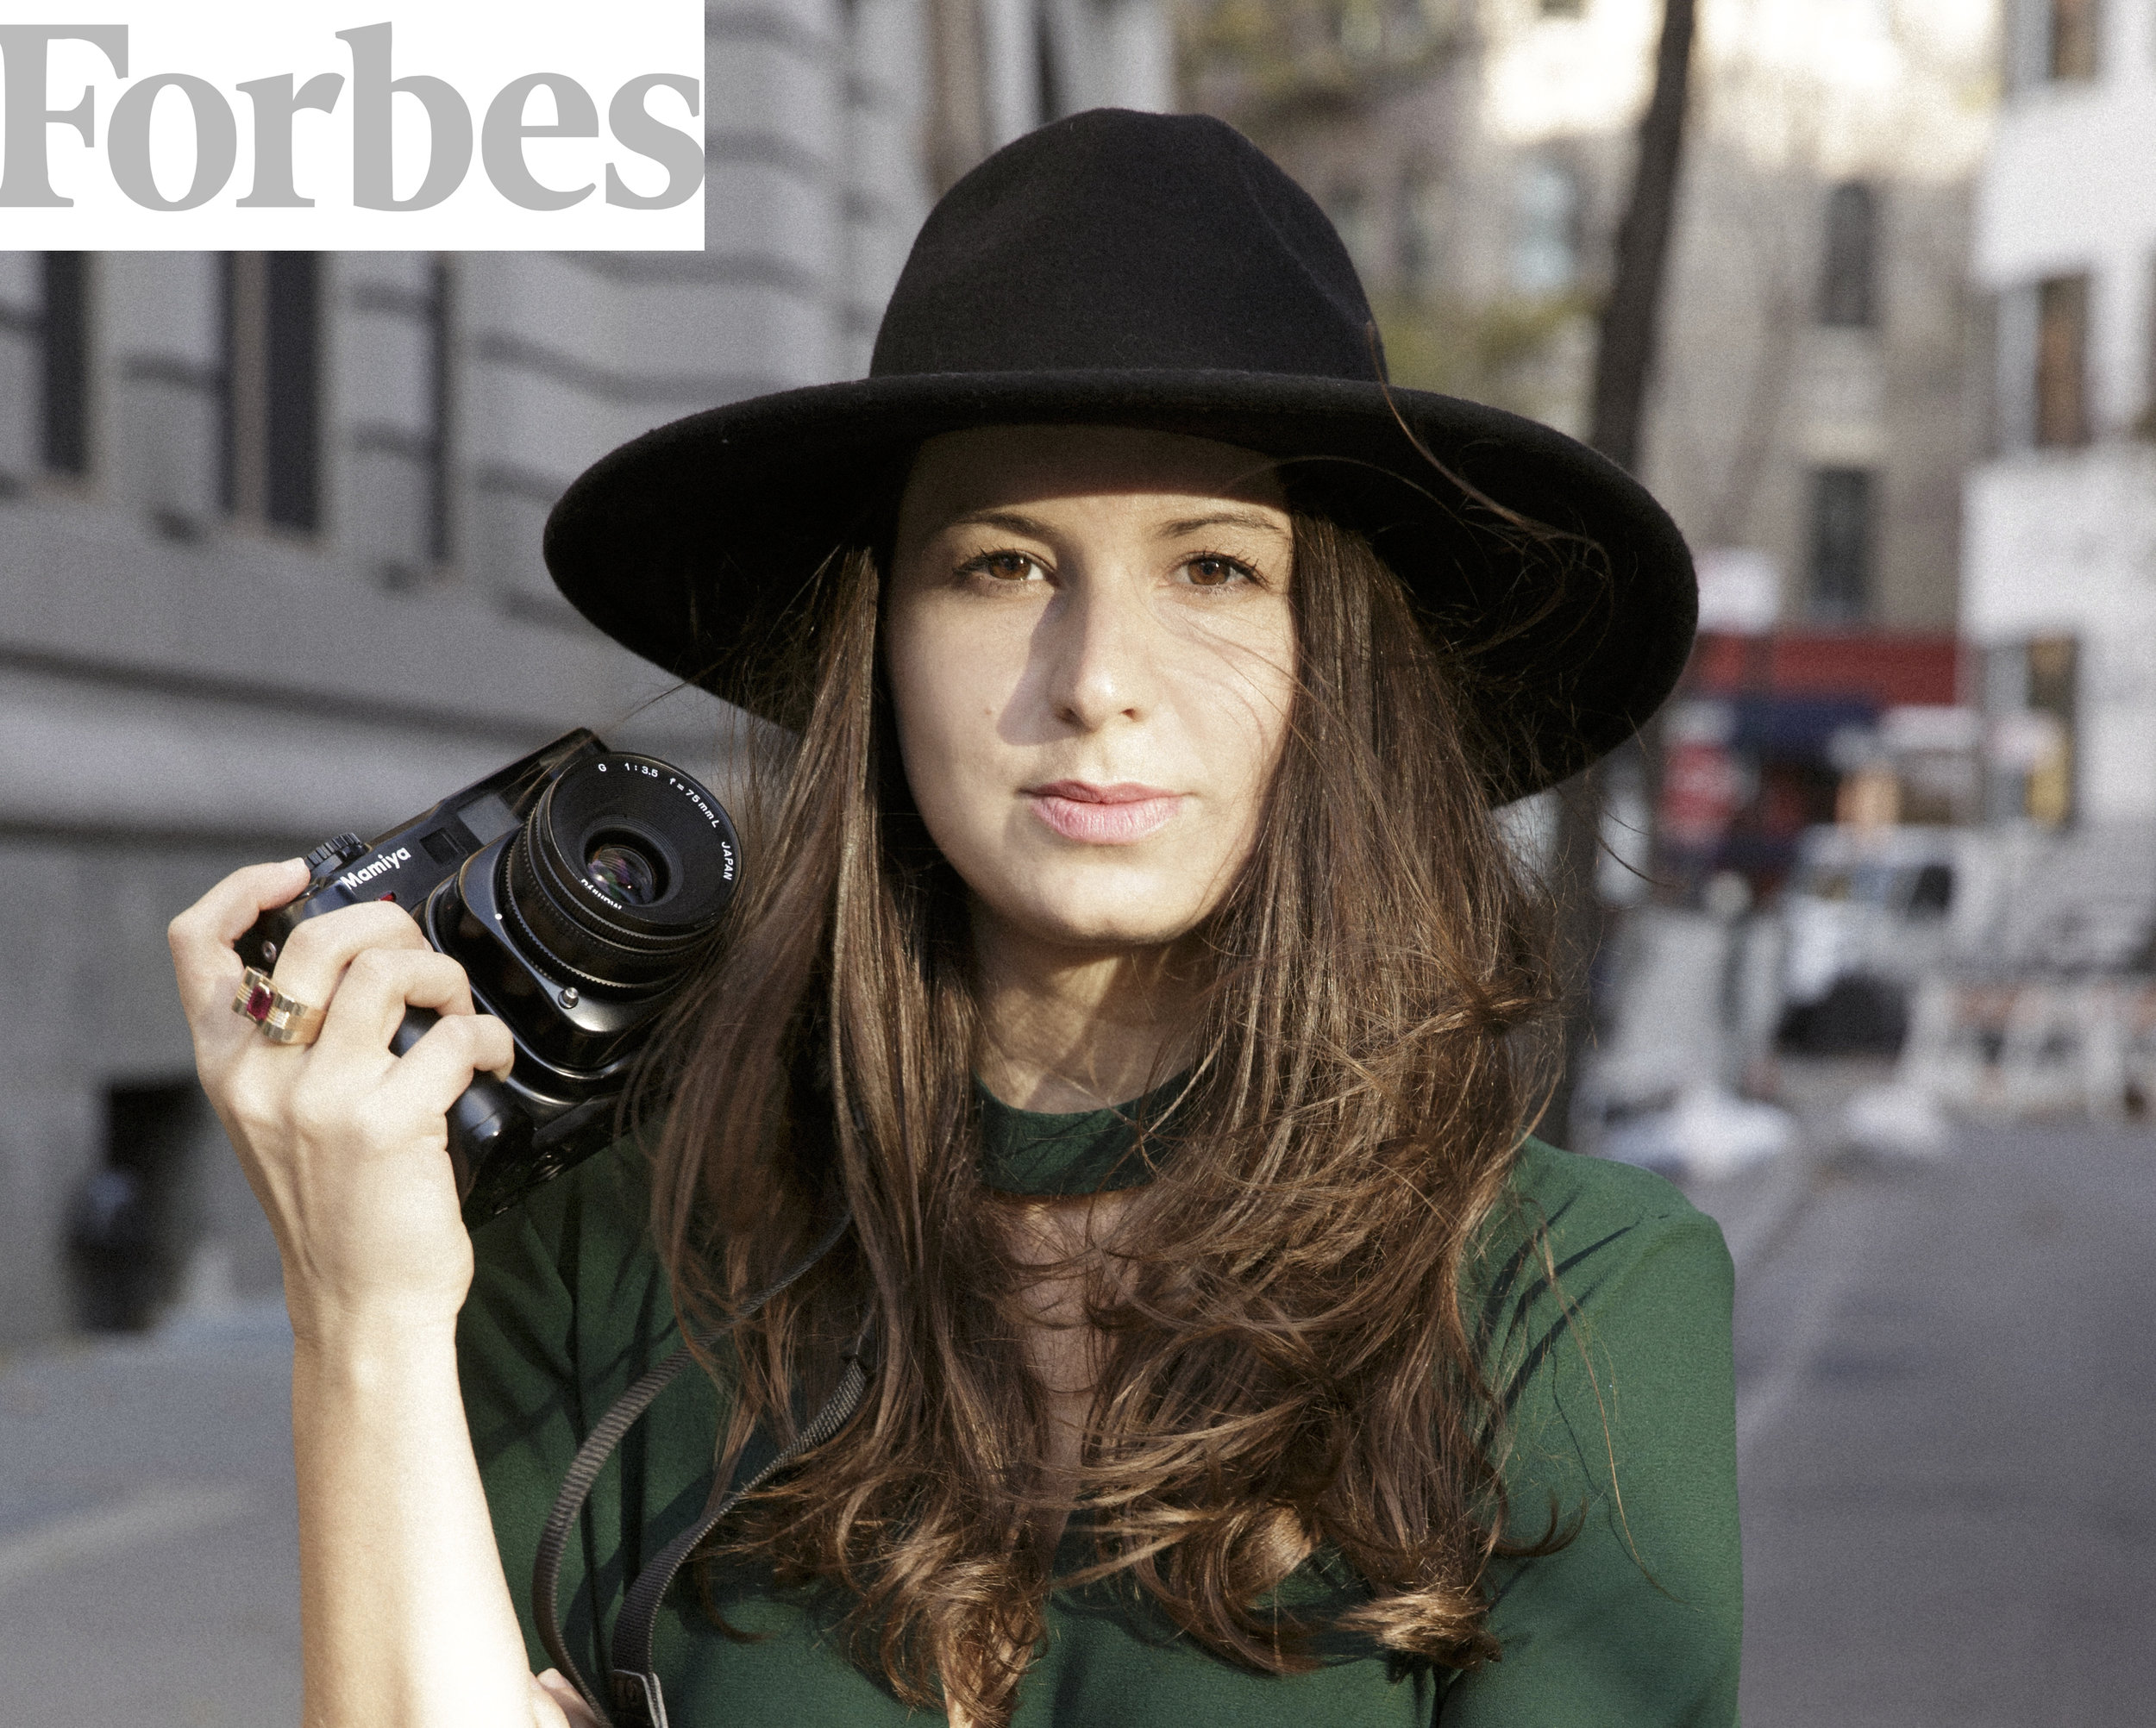 ABOUT - Italian photographer based in New York, she is in the prestigious Forbes list : Forbes 30 Under 30 in the Arts.Her clients include: Bulgari, M Missoni, Calvin Klein, TOD'S, Marc Jacobs, Victoria's Secret, Woolrich, Cesare Paciotti, Santoni, Genny, Agent Provocateur and several more. Federica Dall'Orso publishes her work in Vogue, Elle, GLAMOUR, WWD, The Coveteur and W Magazine.For bookings or print please contact:federica.dallorso@gmail.comInstagram: @federicaphotography